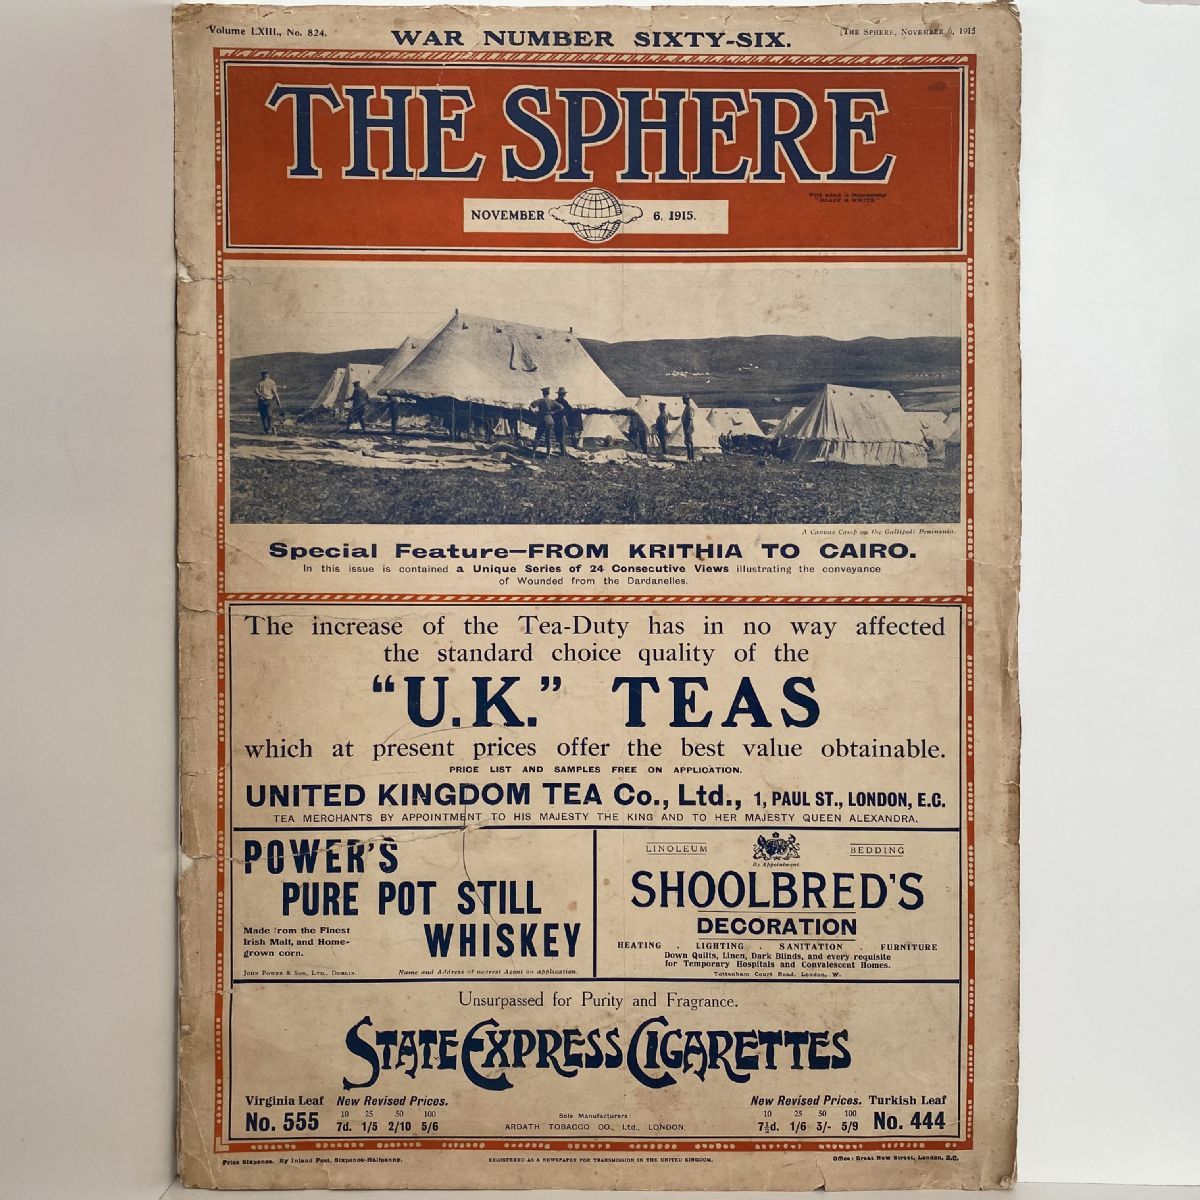 THE SPHERE War Number Sixty-Six. 3 November 1915. No. 824